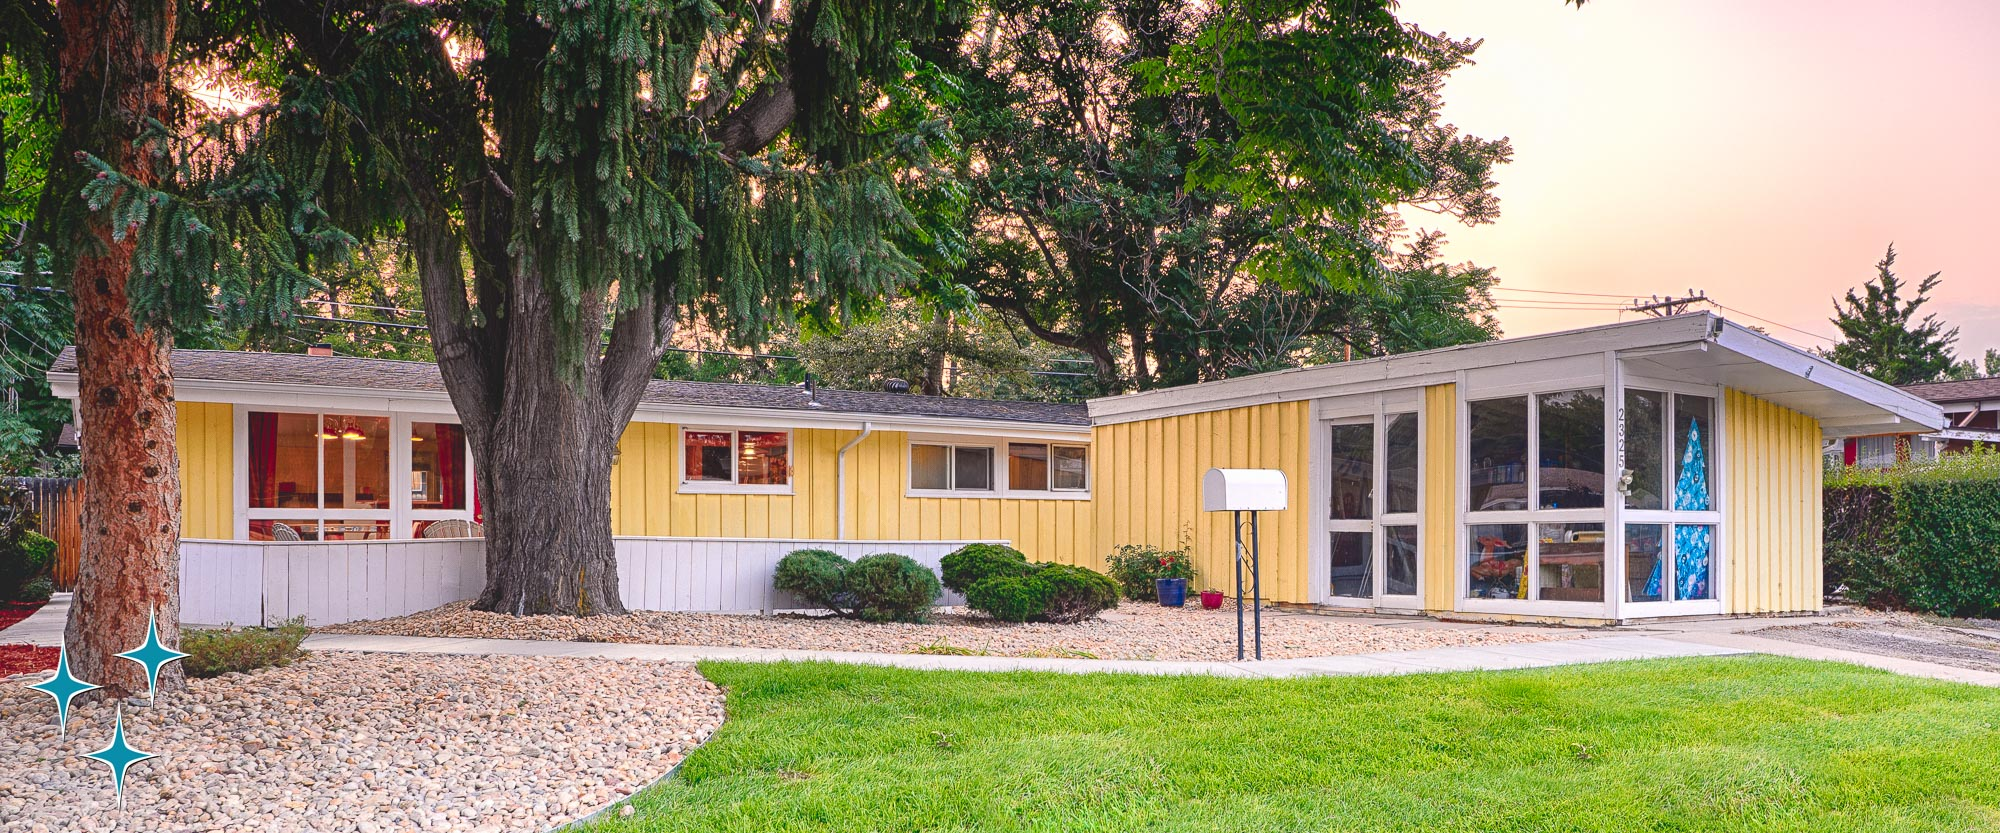 """""""That '50s Home,"""" a Cliff May Home in Harvey Park -"""